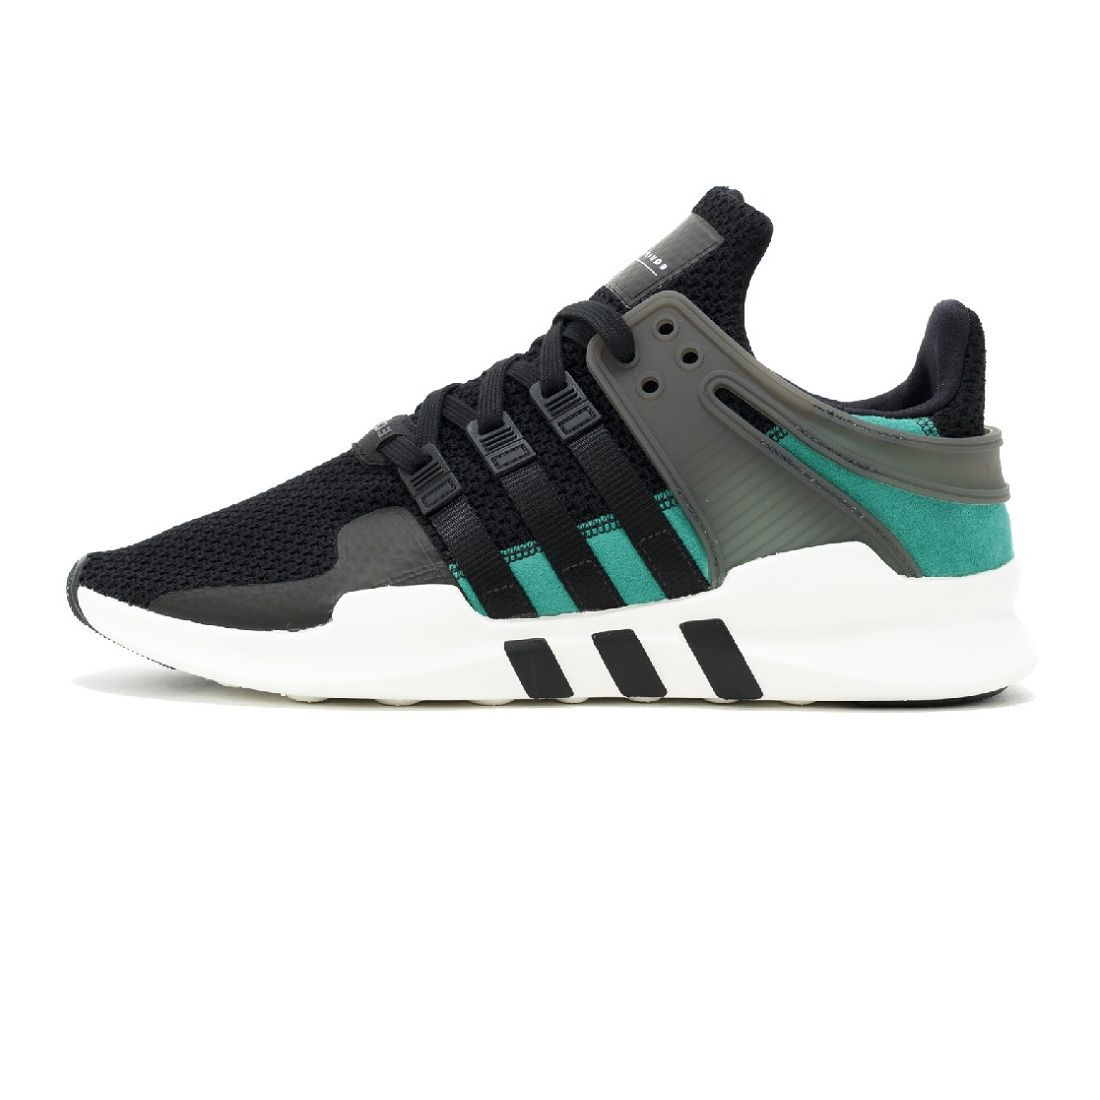 new product bdac3 c960d Adidas EQT Support ADV Gray Running Shoes - Buy Adidas EQT ...